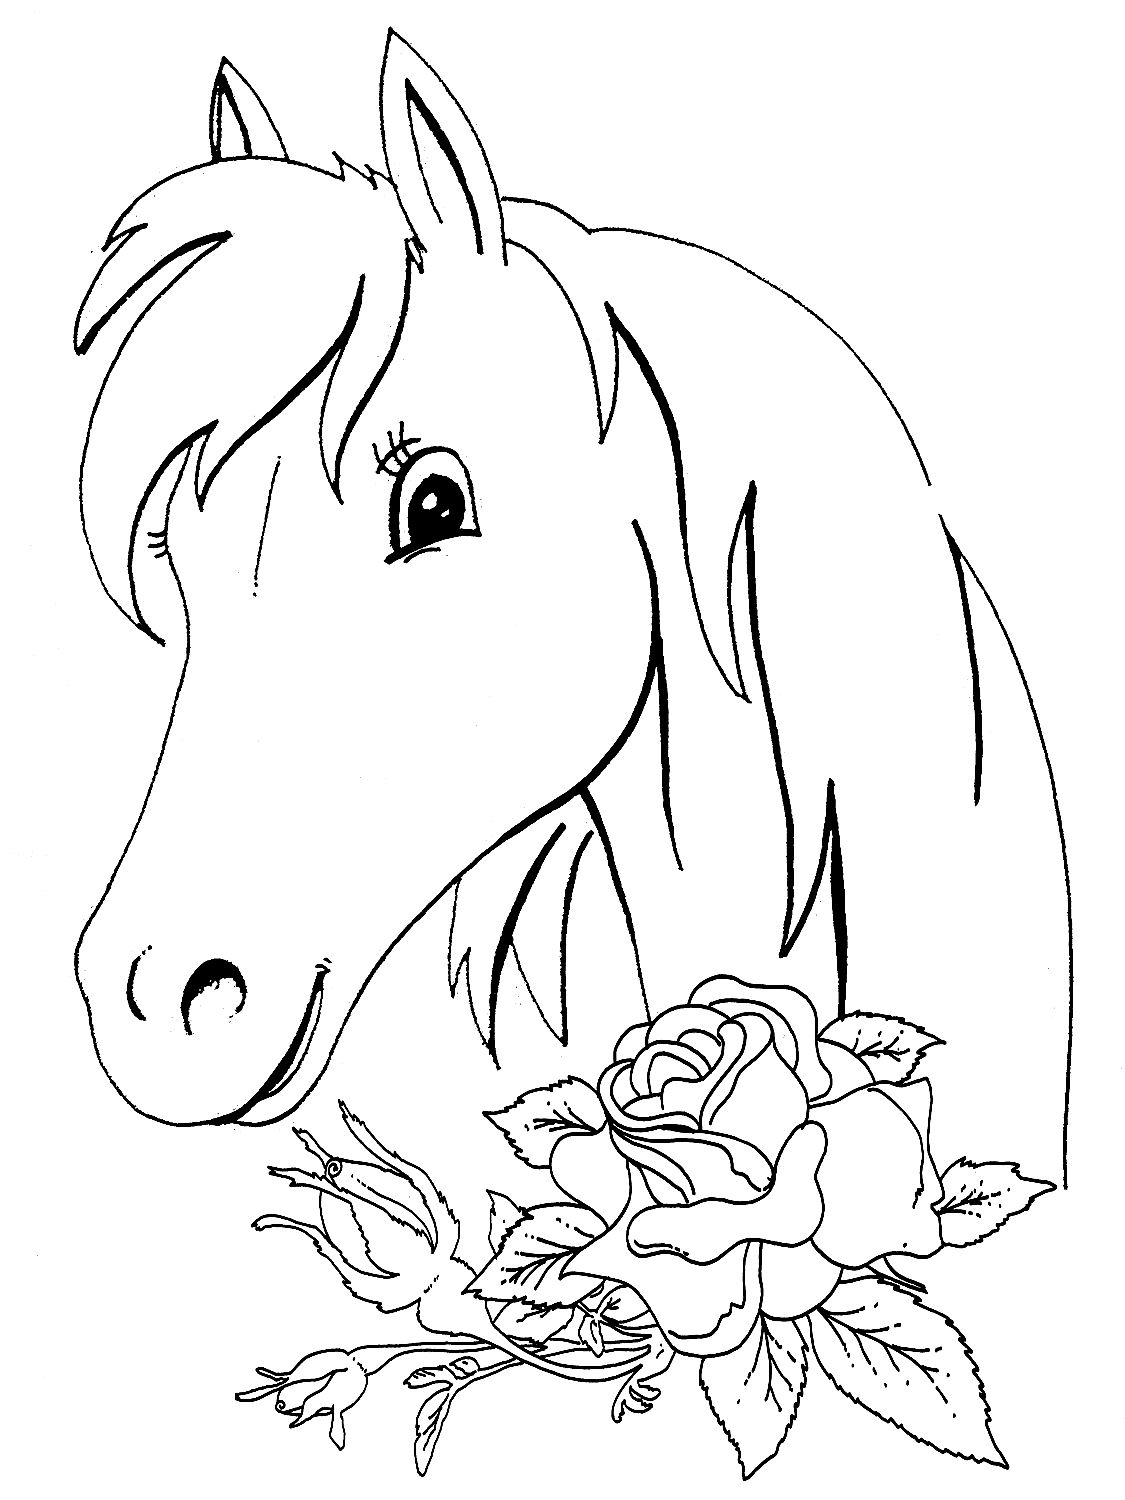 Christmas Horse Coloring Pages Free In 2020 Horse Coloring Pages Monster Coloring Pages Animal Coloring Pages